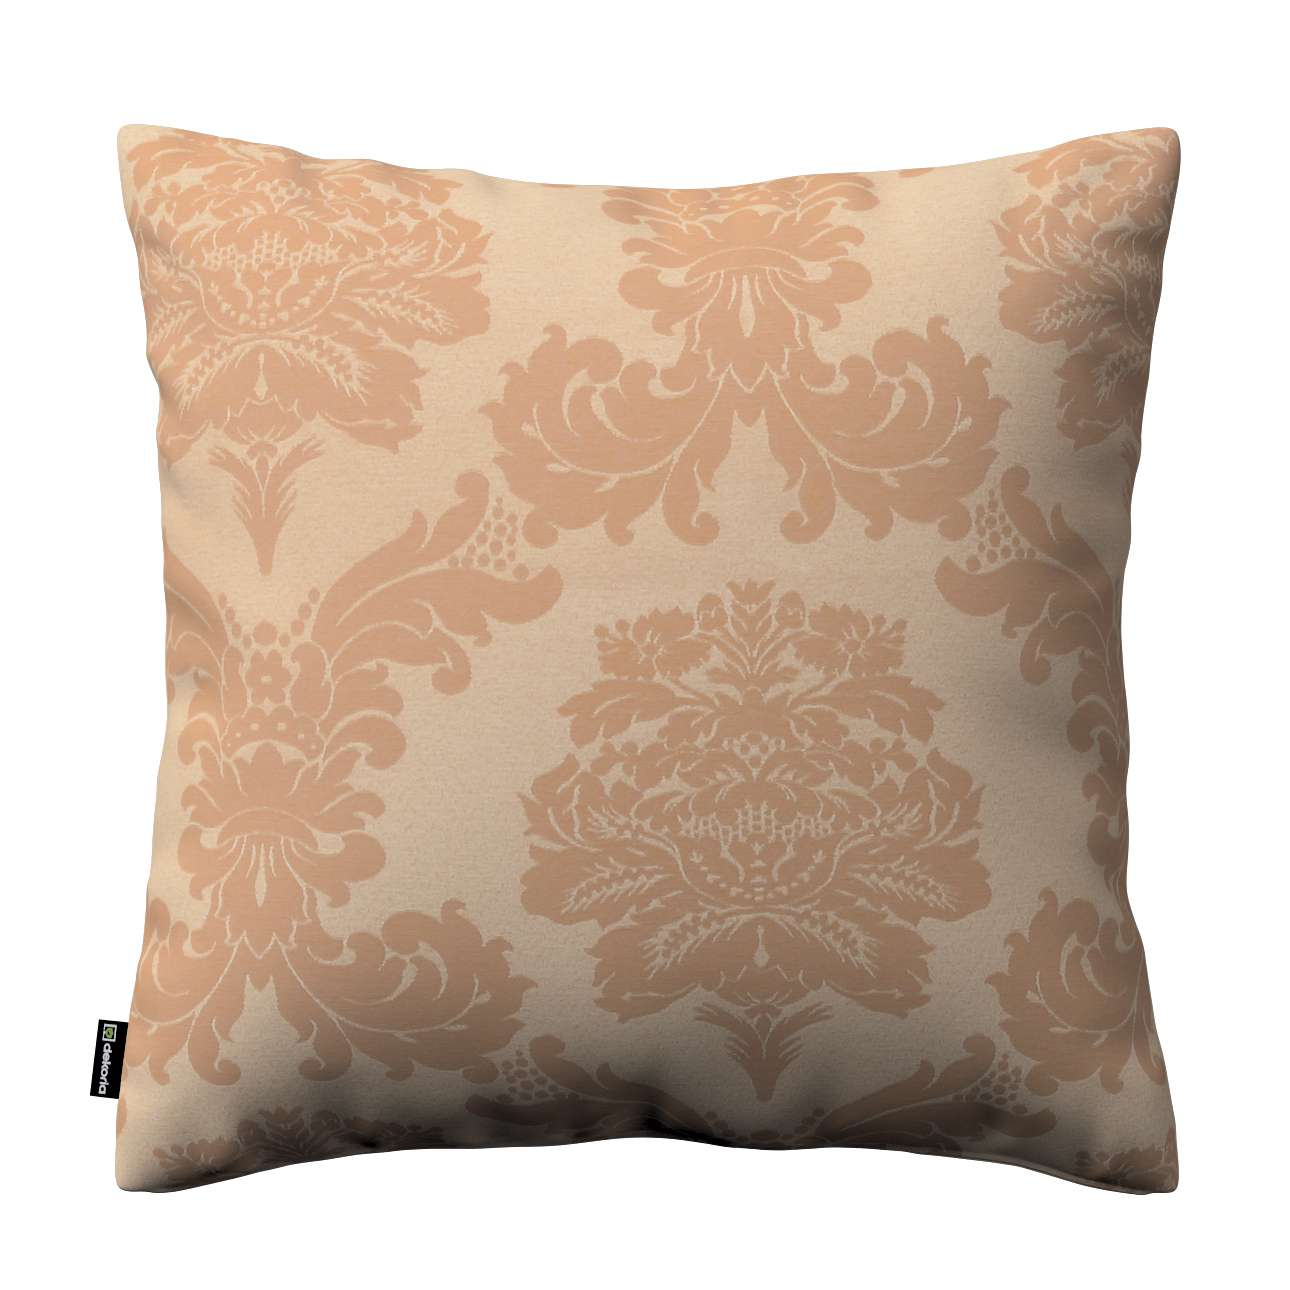 Kinga cushion cover 43 x 43 cm (17 x 17 inch) in collection Damasco, fabric: 613-04